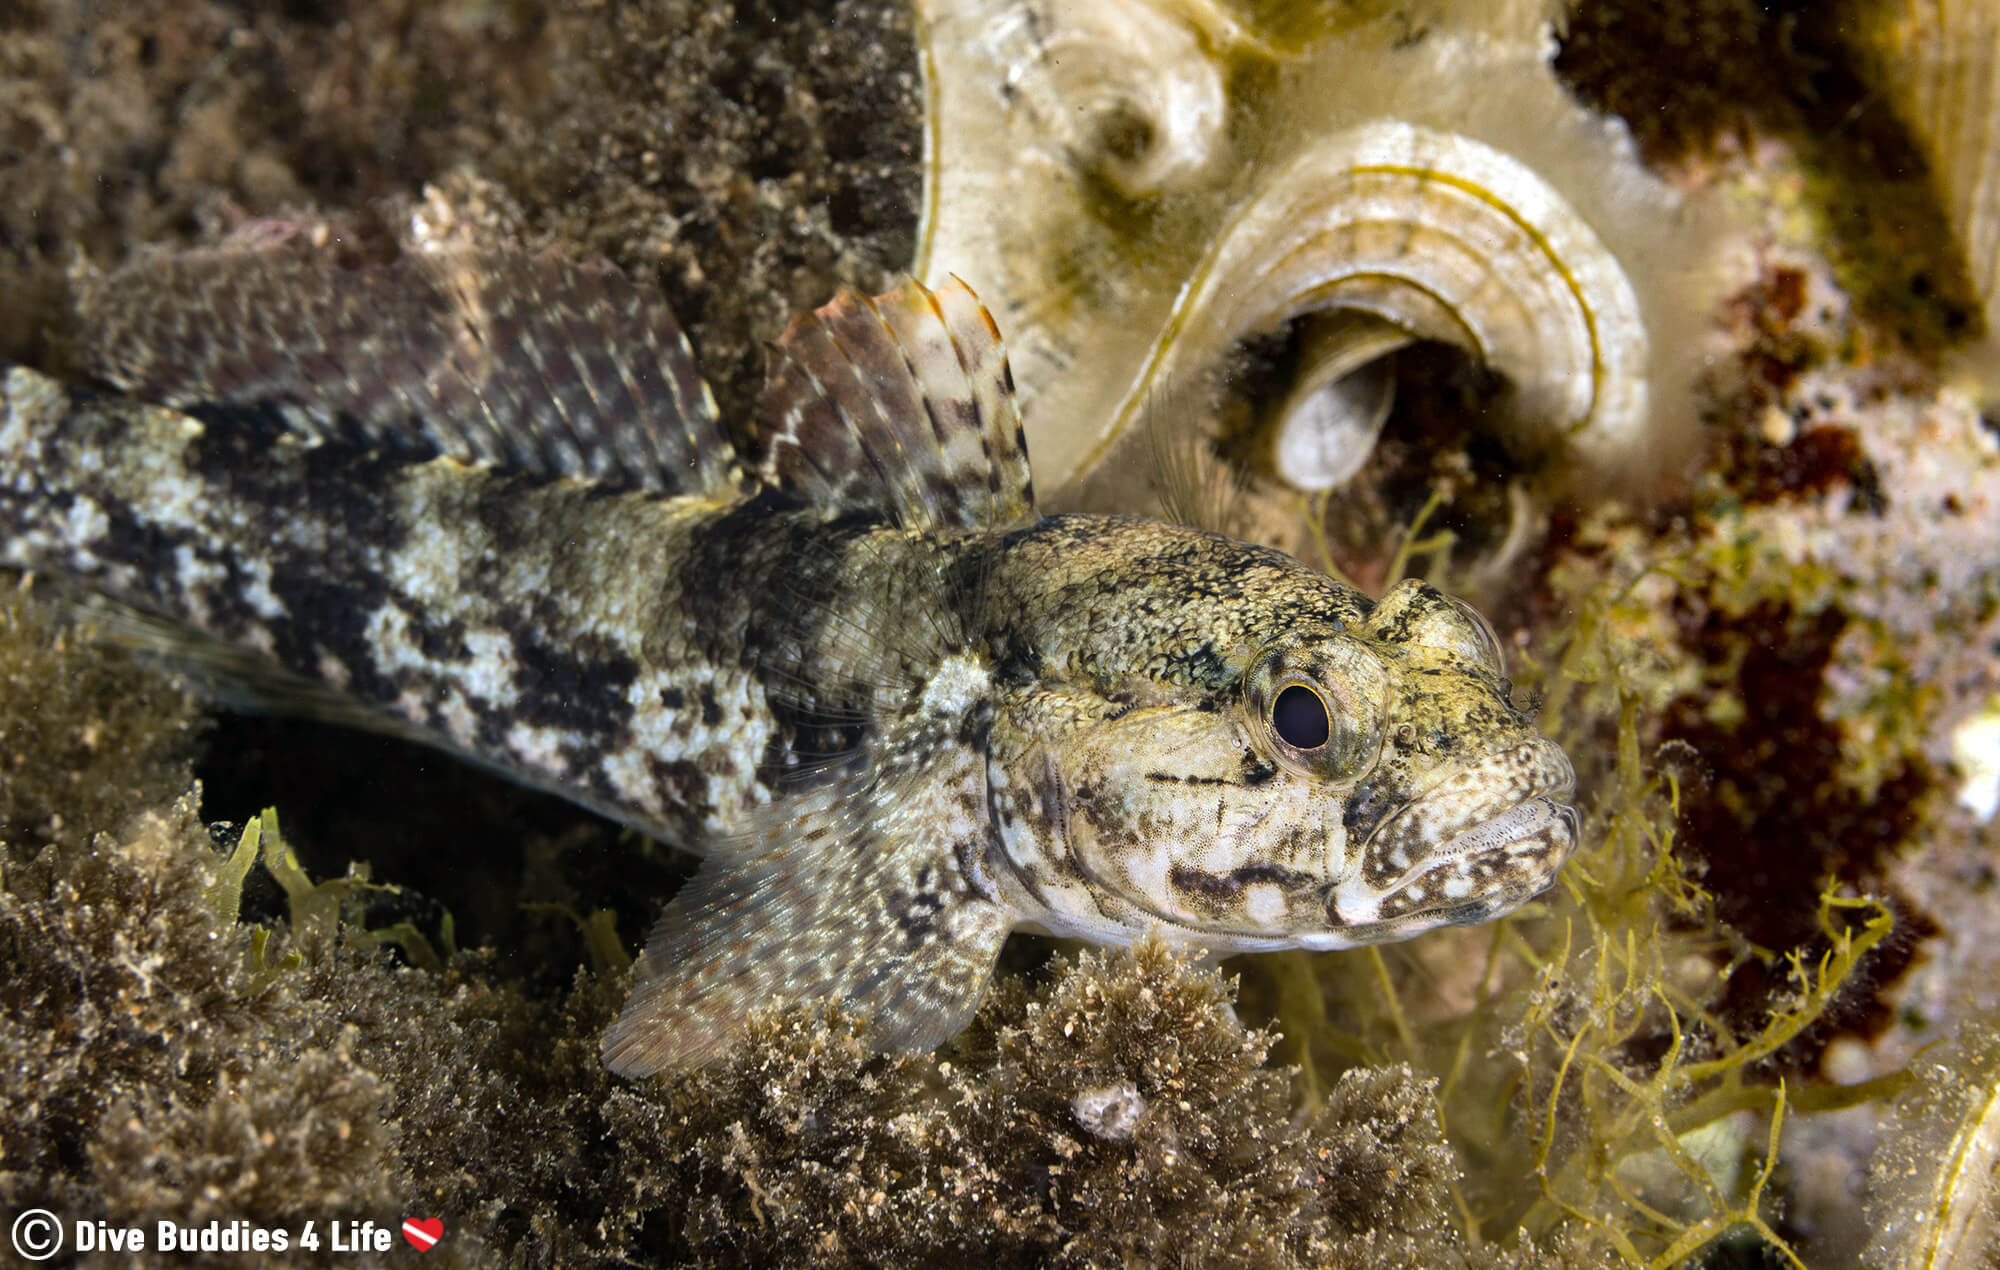 Camouflaged Spanish Fish See Scuba Diving On The Costa Brava, Europe